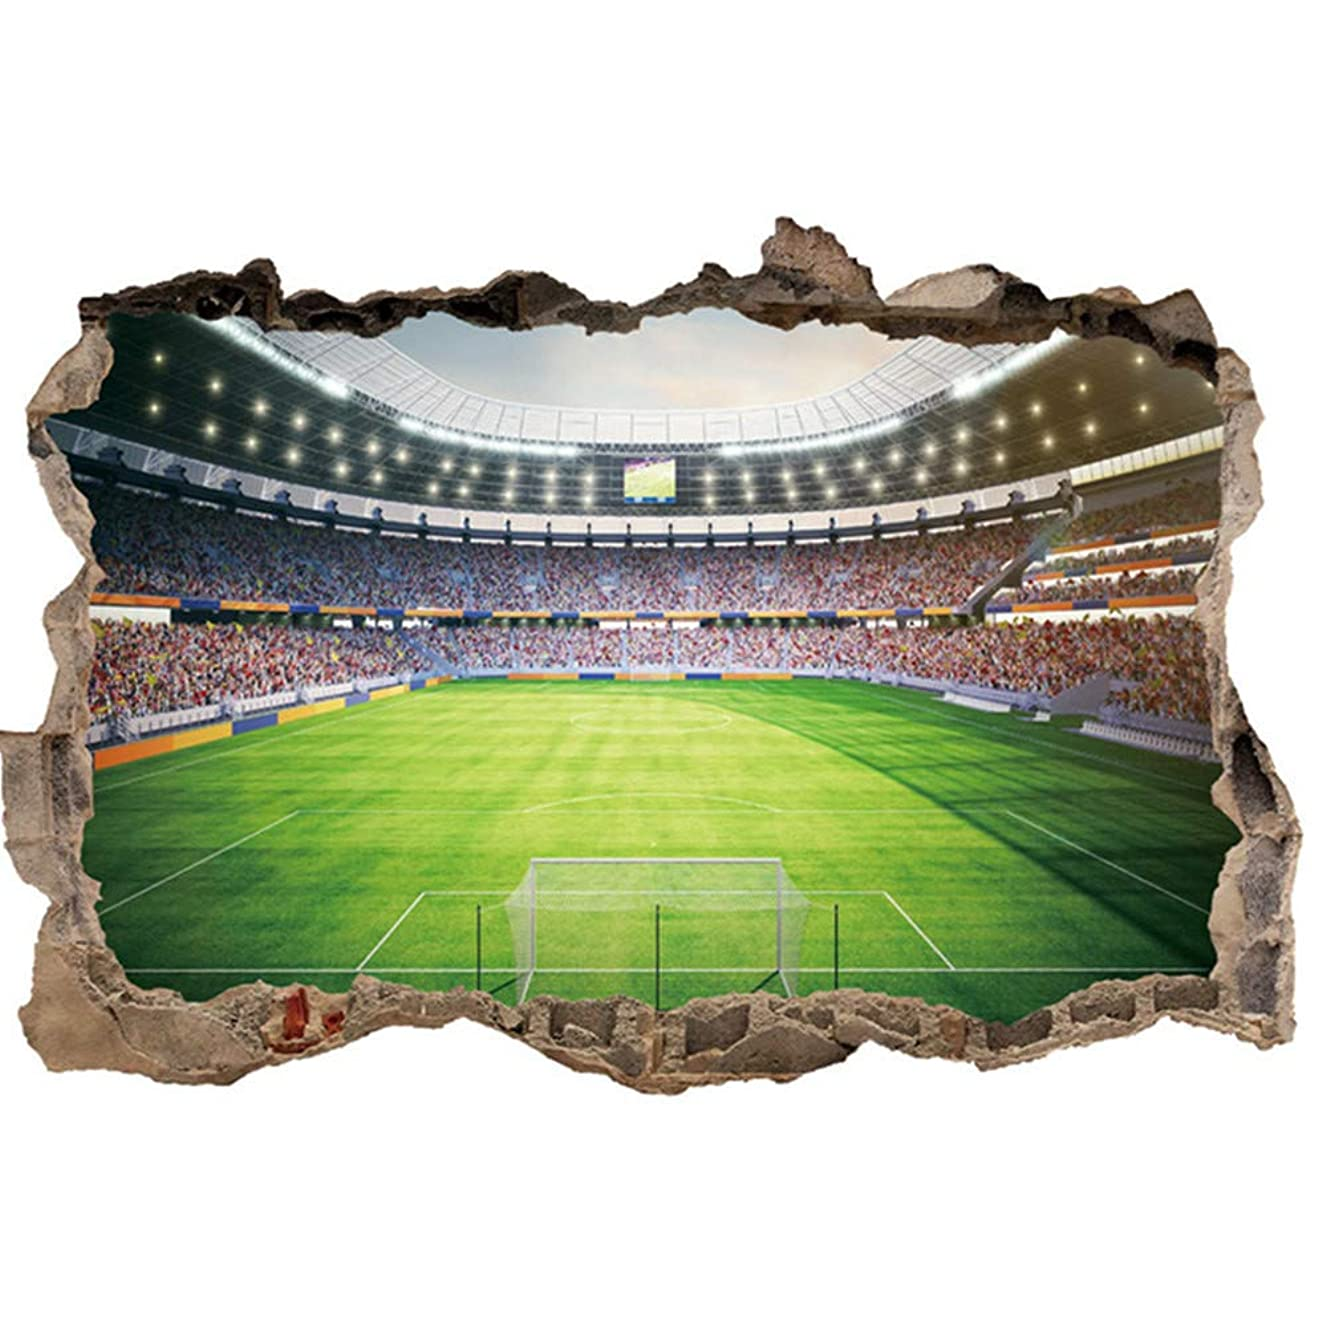 uaswguDFS 3D Football Pitch Broken Wall Wall Stickers, Vinyl Wall Stickers/Park Wall Mural/Removable/Home Decoration Art Decals to Decor for Living Room Decor (5070cm)